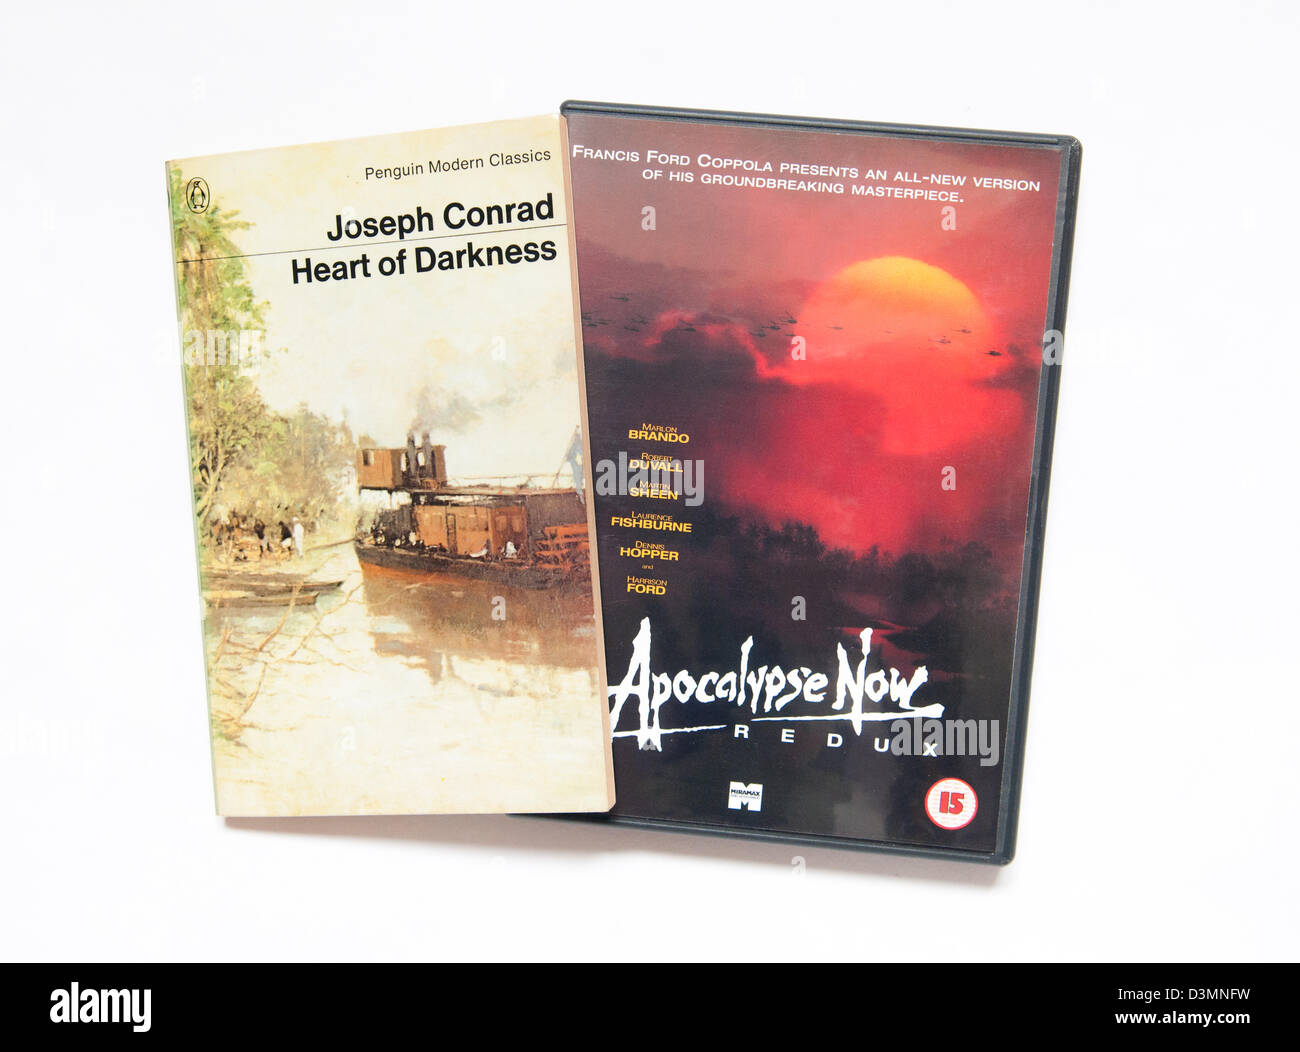 comparing heart of darkness and apocalypse Apocalypse now and heart of darkness: compare and contrast essay abdullah s al-mour'ai id: 3103035 there are few numbers of movies that were based on novels.